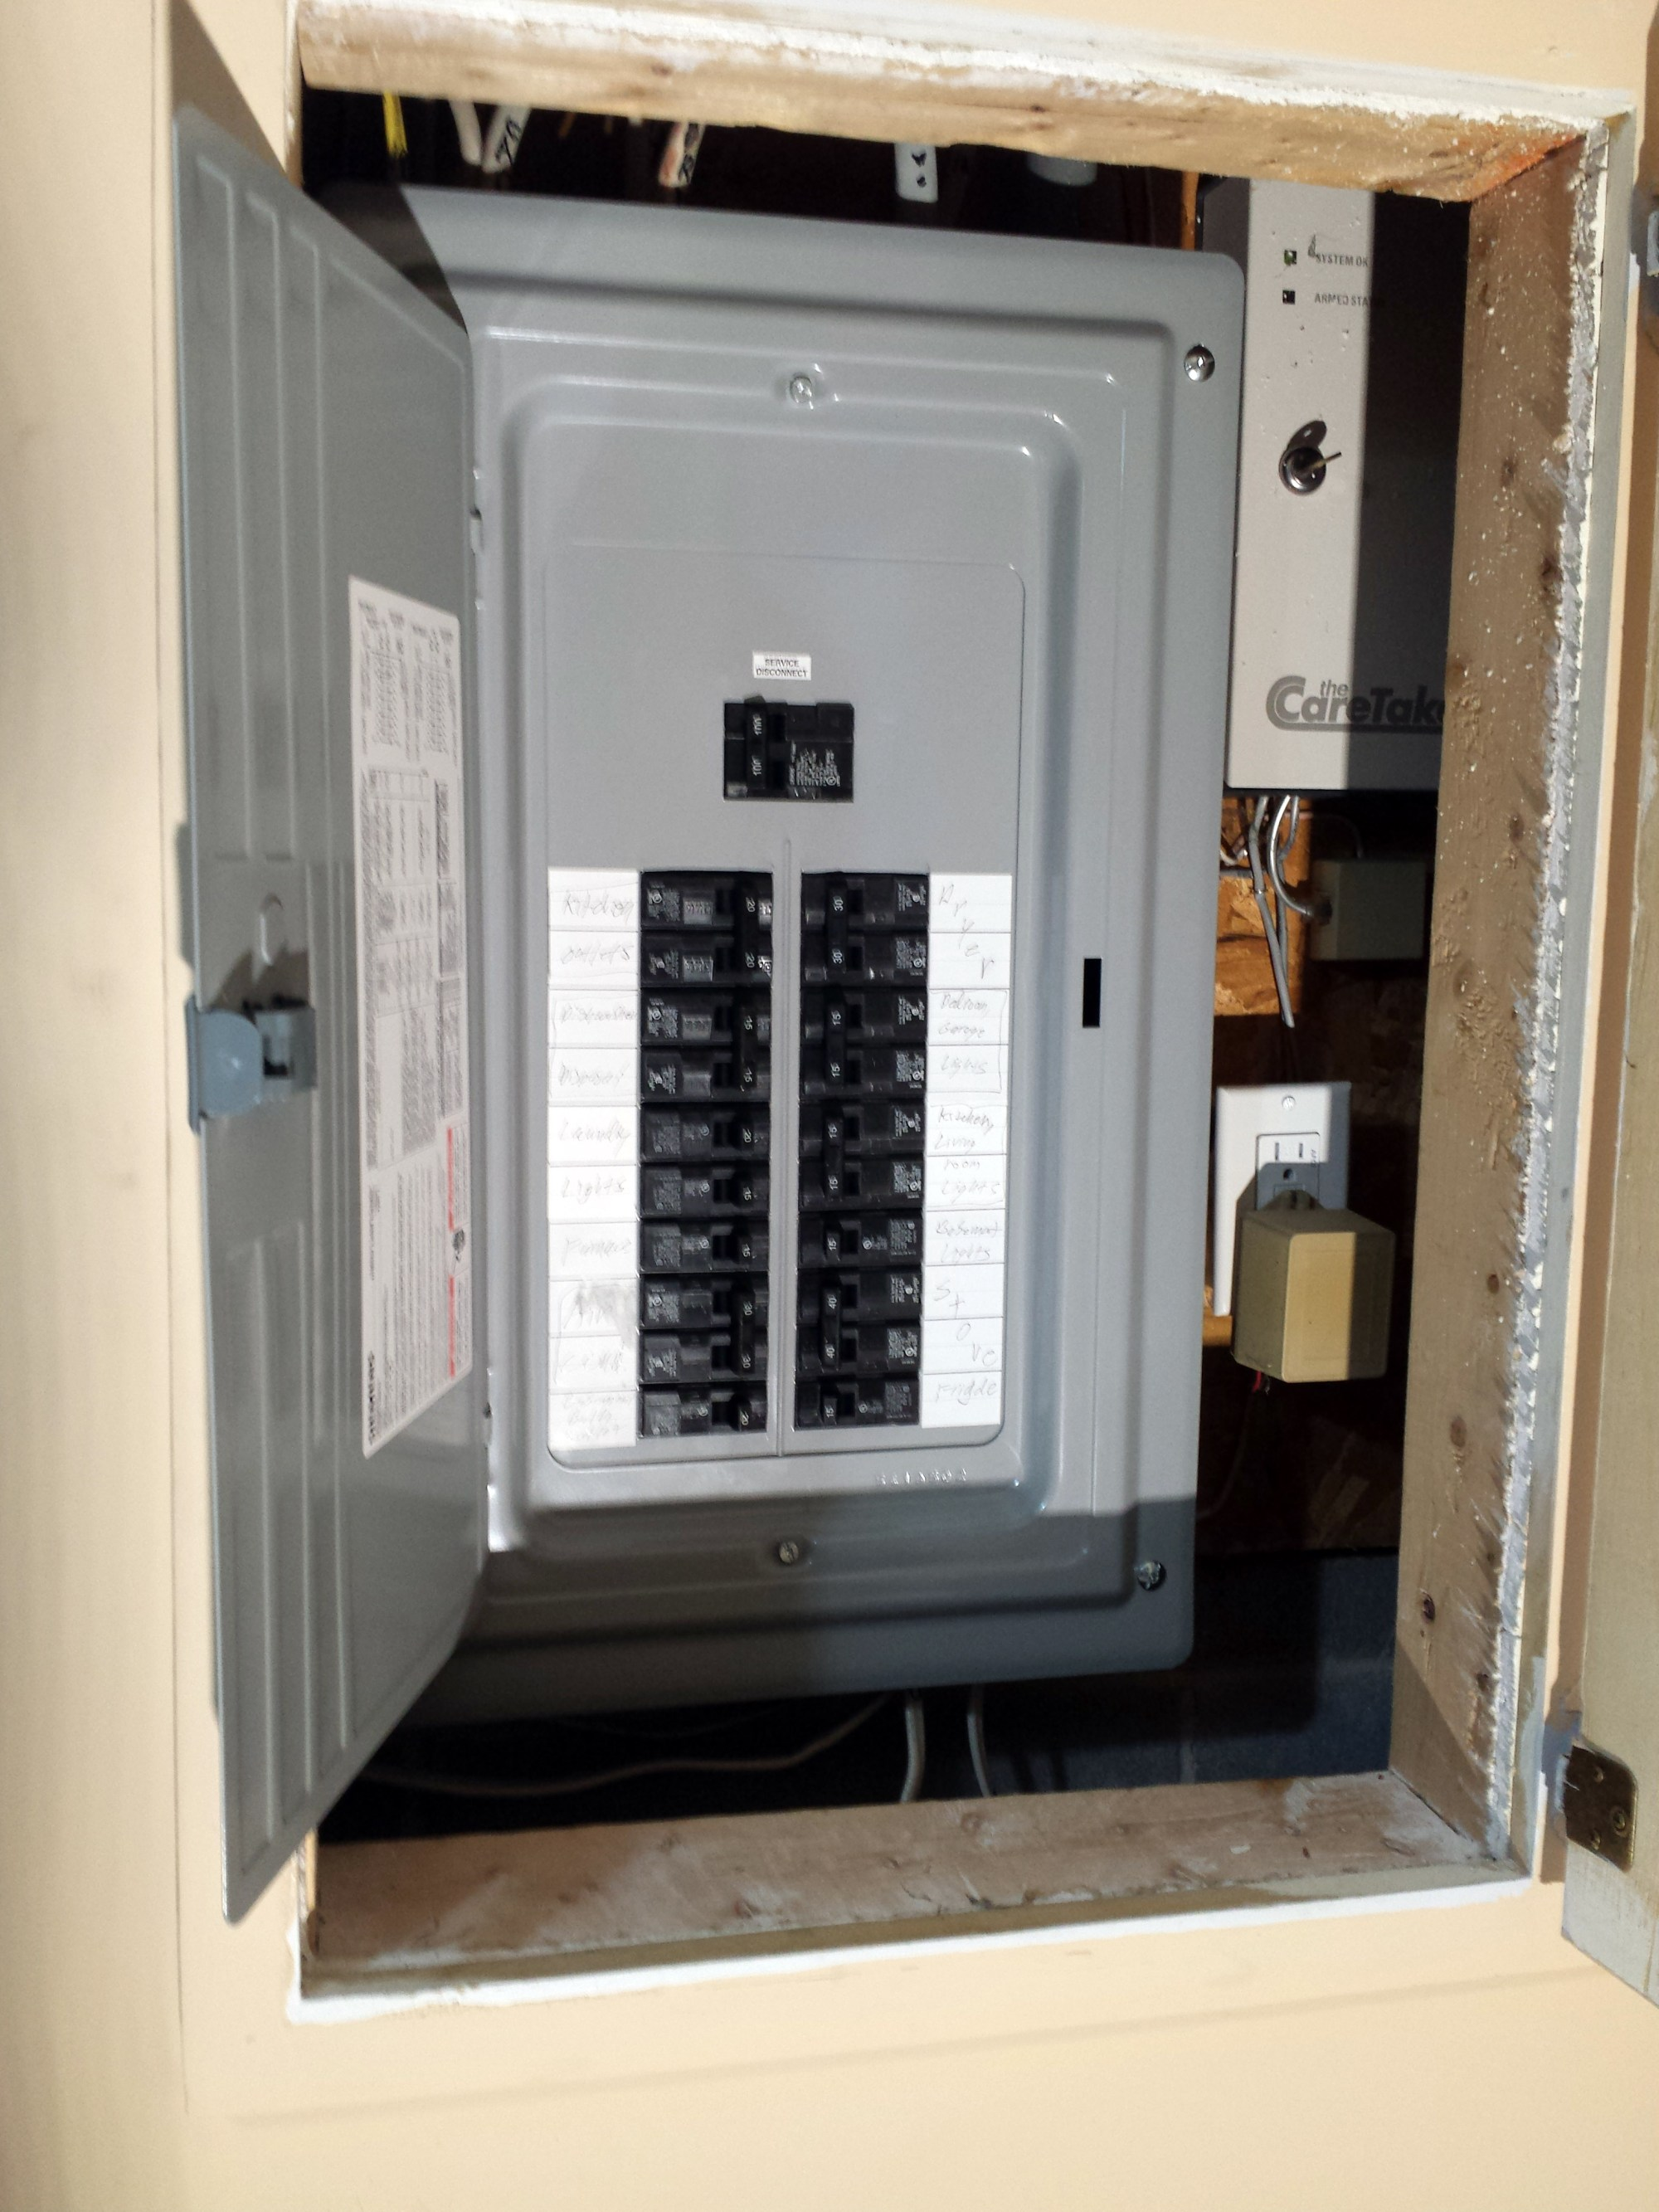 hight resolution of replace fuse box replace fpe breakers total electric 100 amp fuse box car 100 amp fuse box